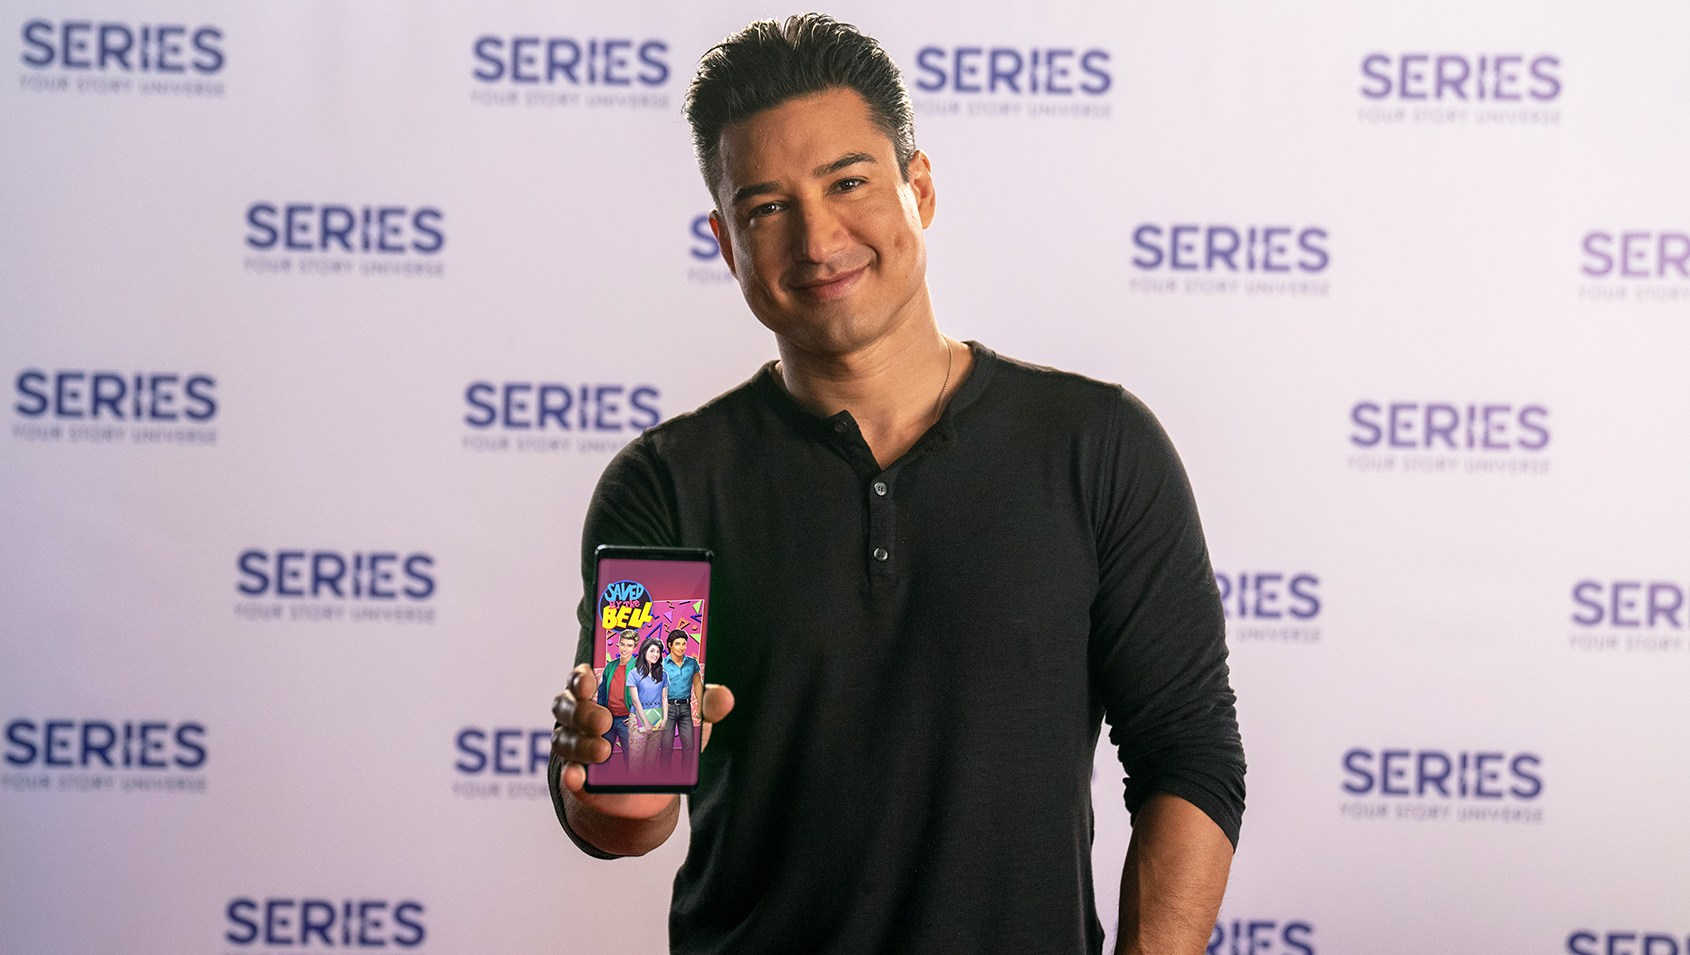 Mario Lopez Bayside High New Mobile Game